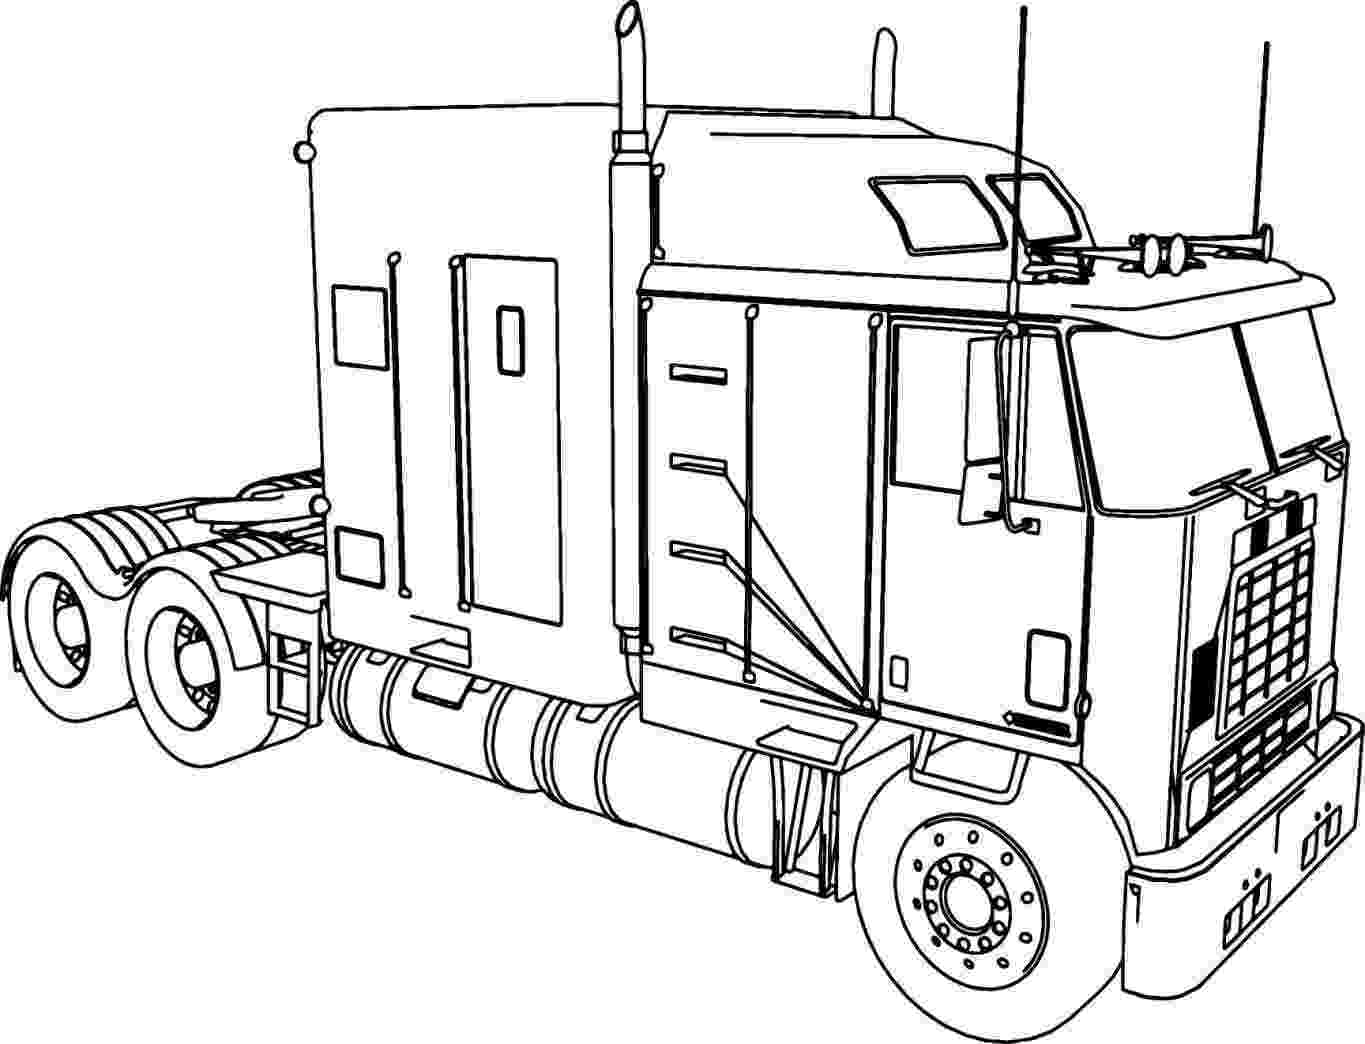 coloring pages of semi trucks diesel truck coloring pages at getcoloringscom free semi coloring pages trucks of